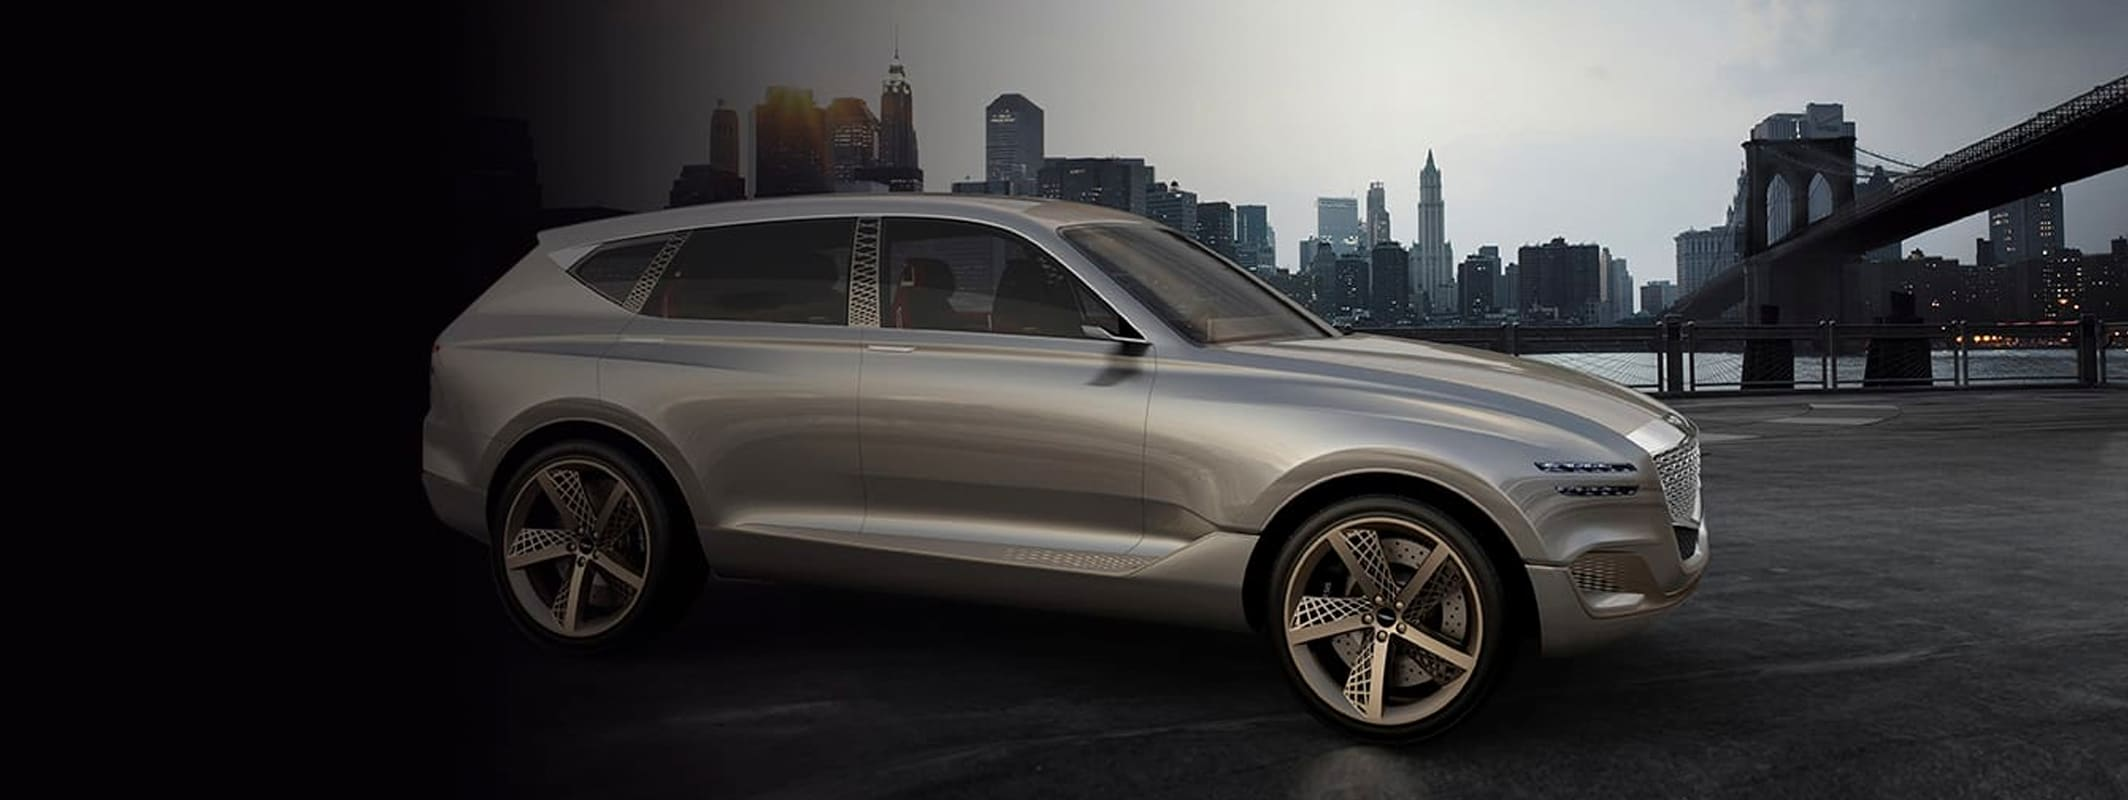 2020 Genesis GV80: News, Design, Release >> 2020 Genesis Gv80 Chicago Il News Release Genesis Of